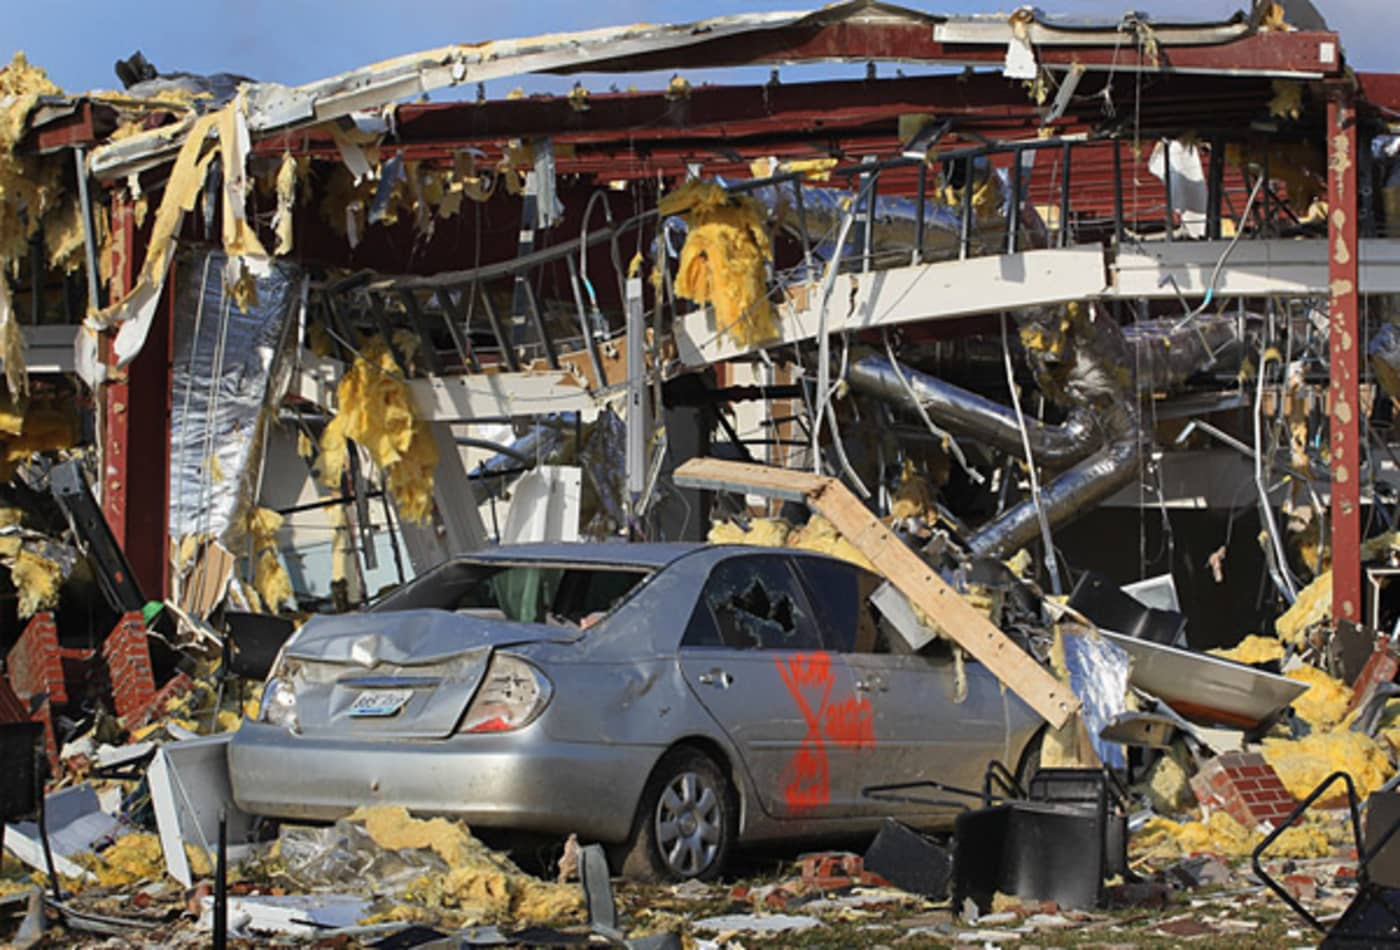 scenes-from-the-midwest-tornadoes-nissan.jpg